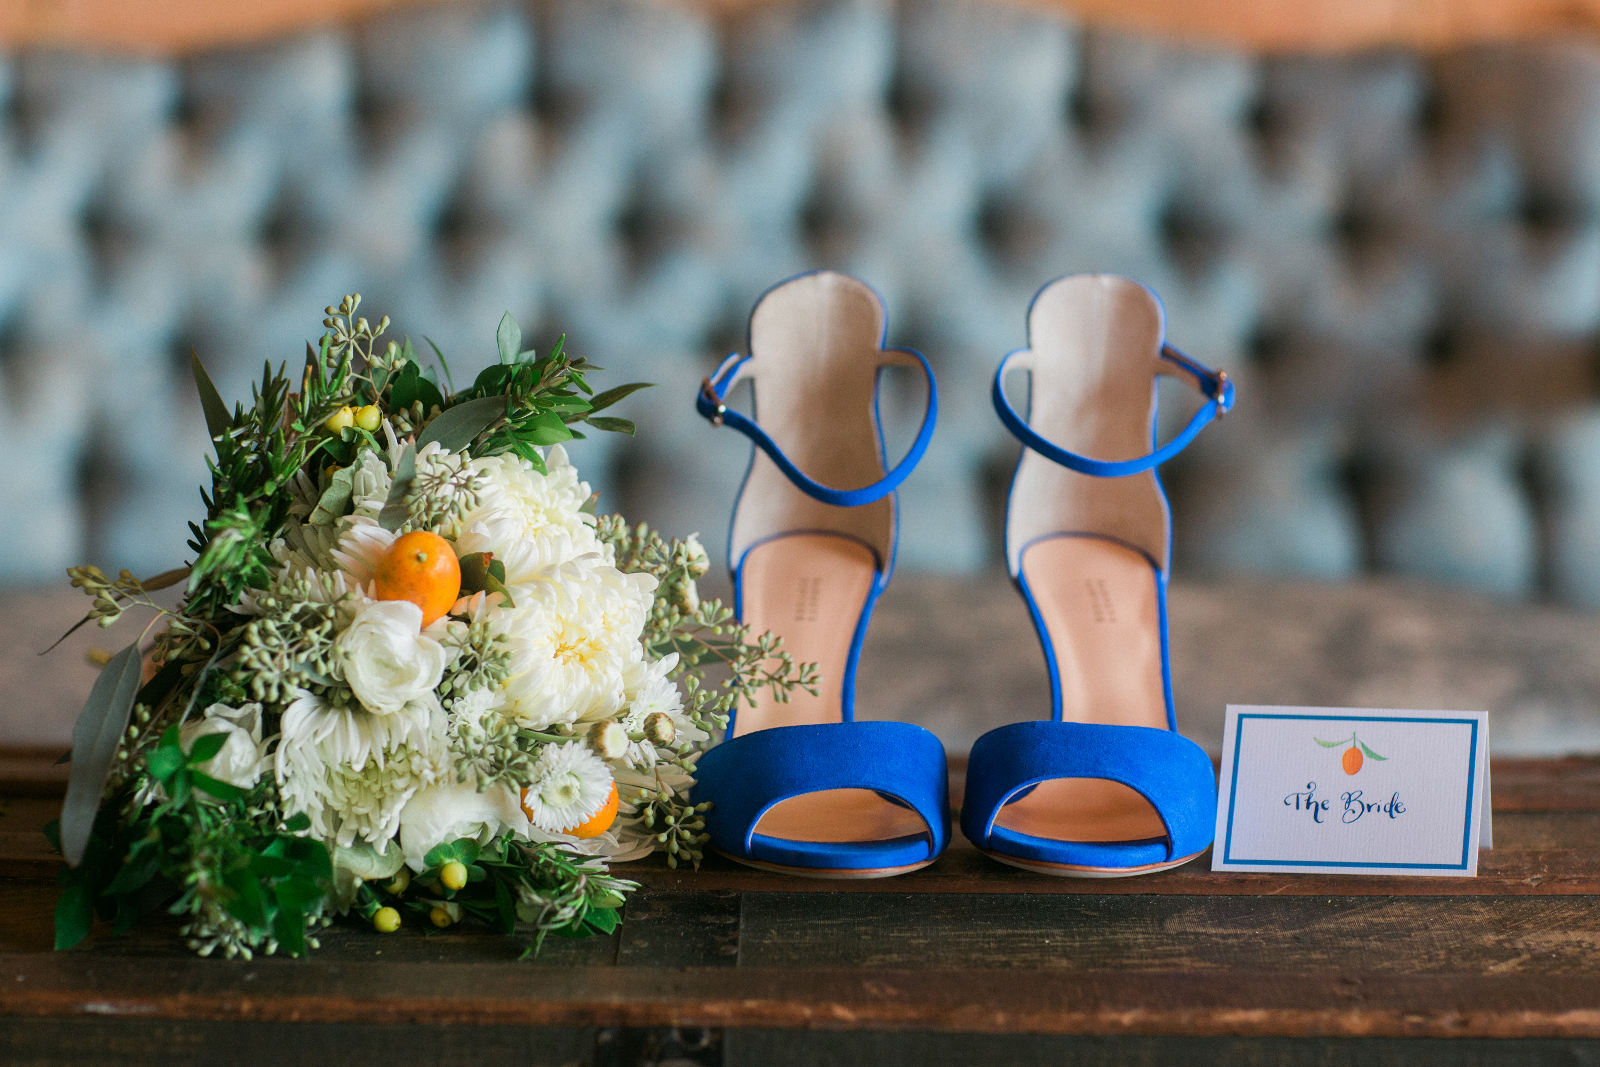 Blue Bridal shoues